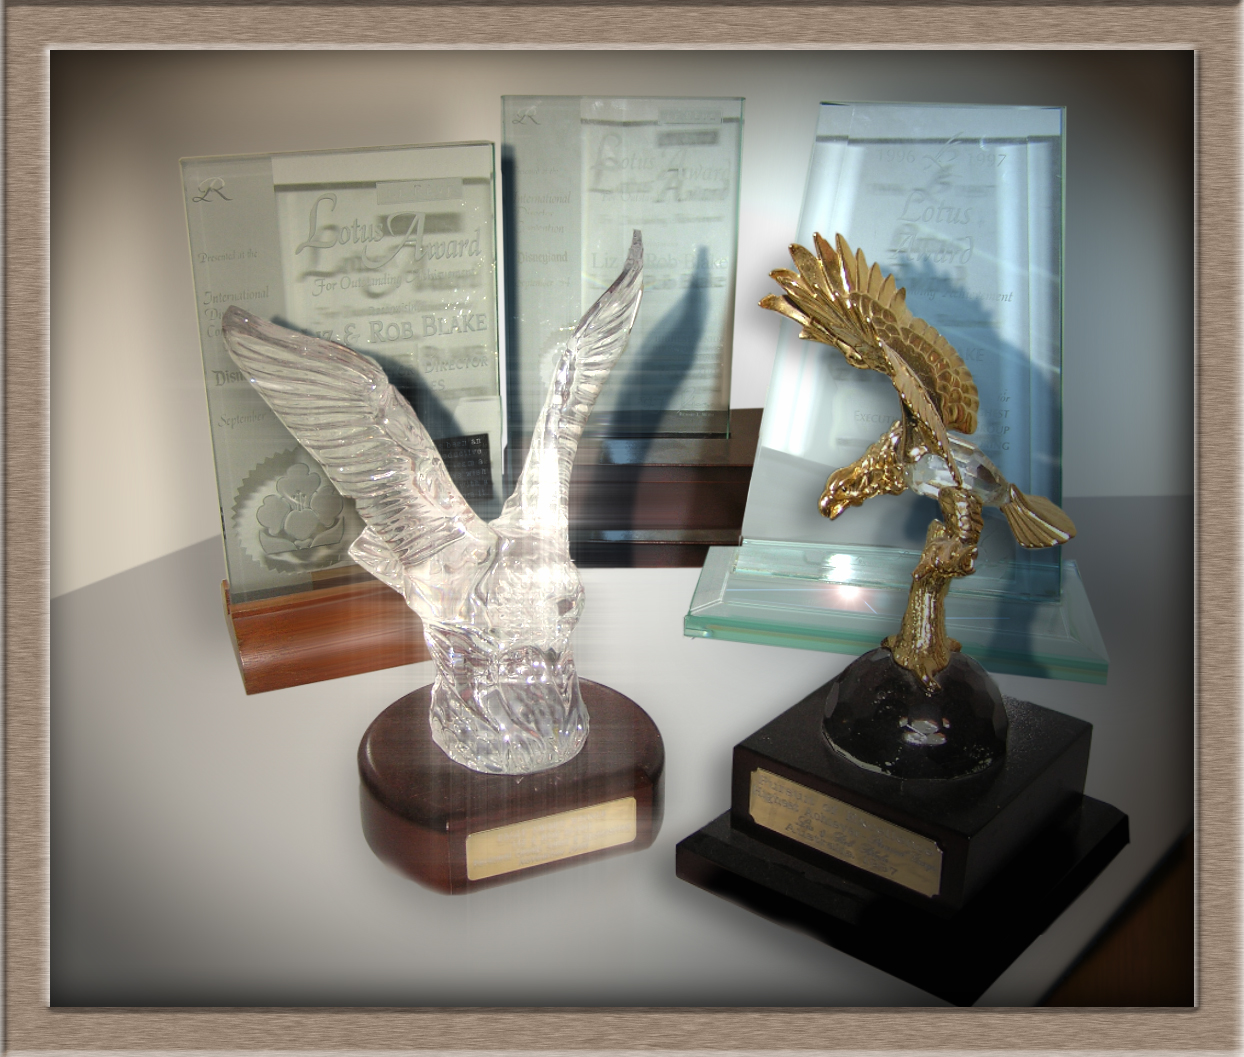 International 'Lotus' & National 'Eagle' Awards